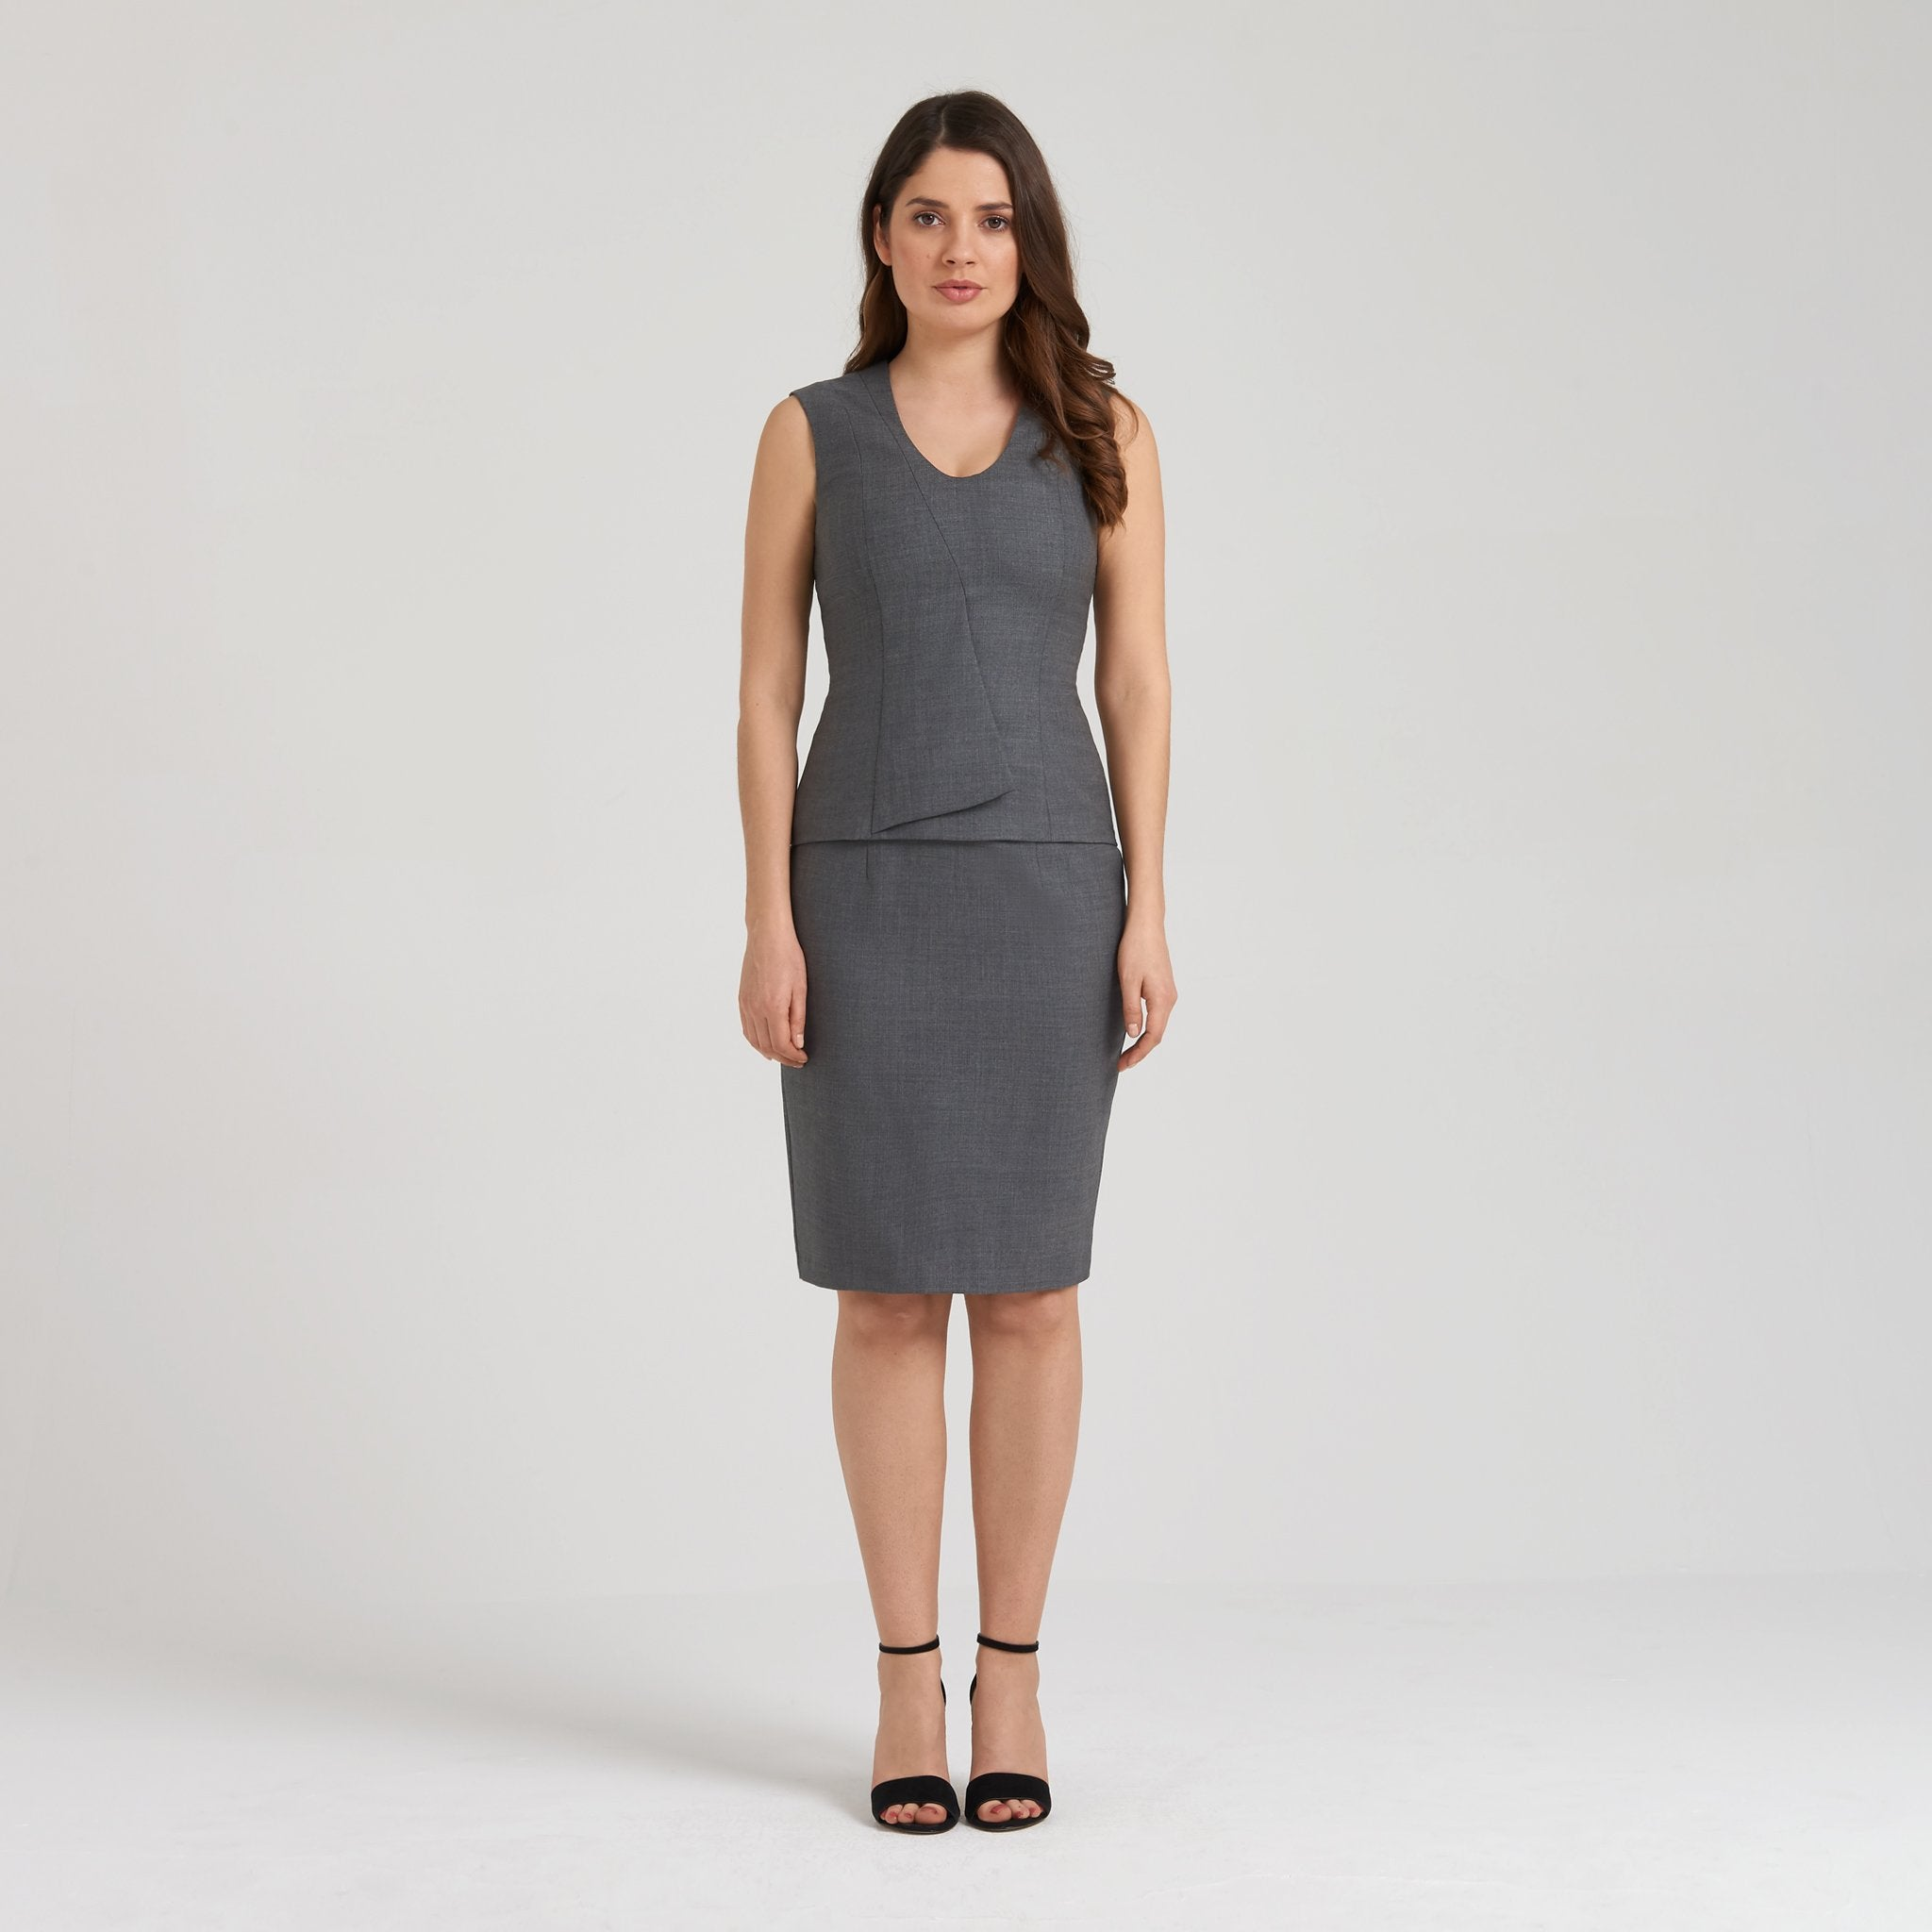 V-neck peplum grey top with a touch of stretch, breathable and thermoregulator